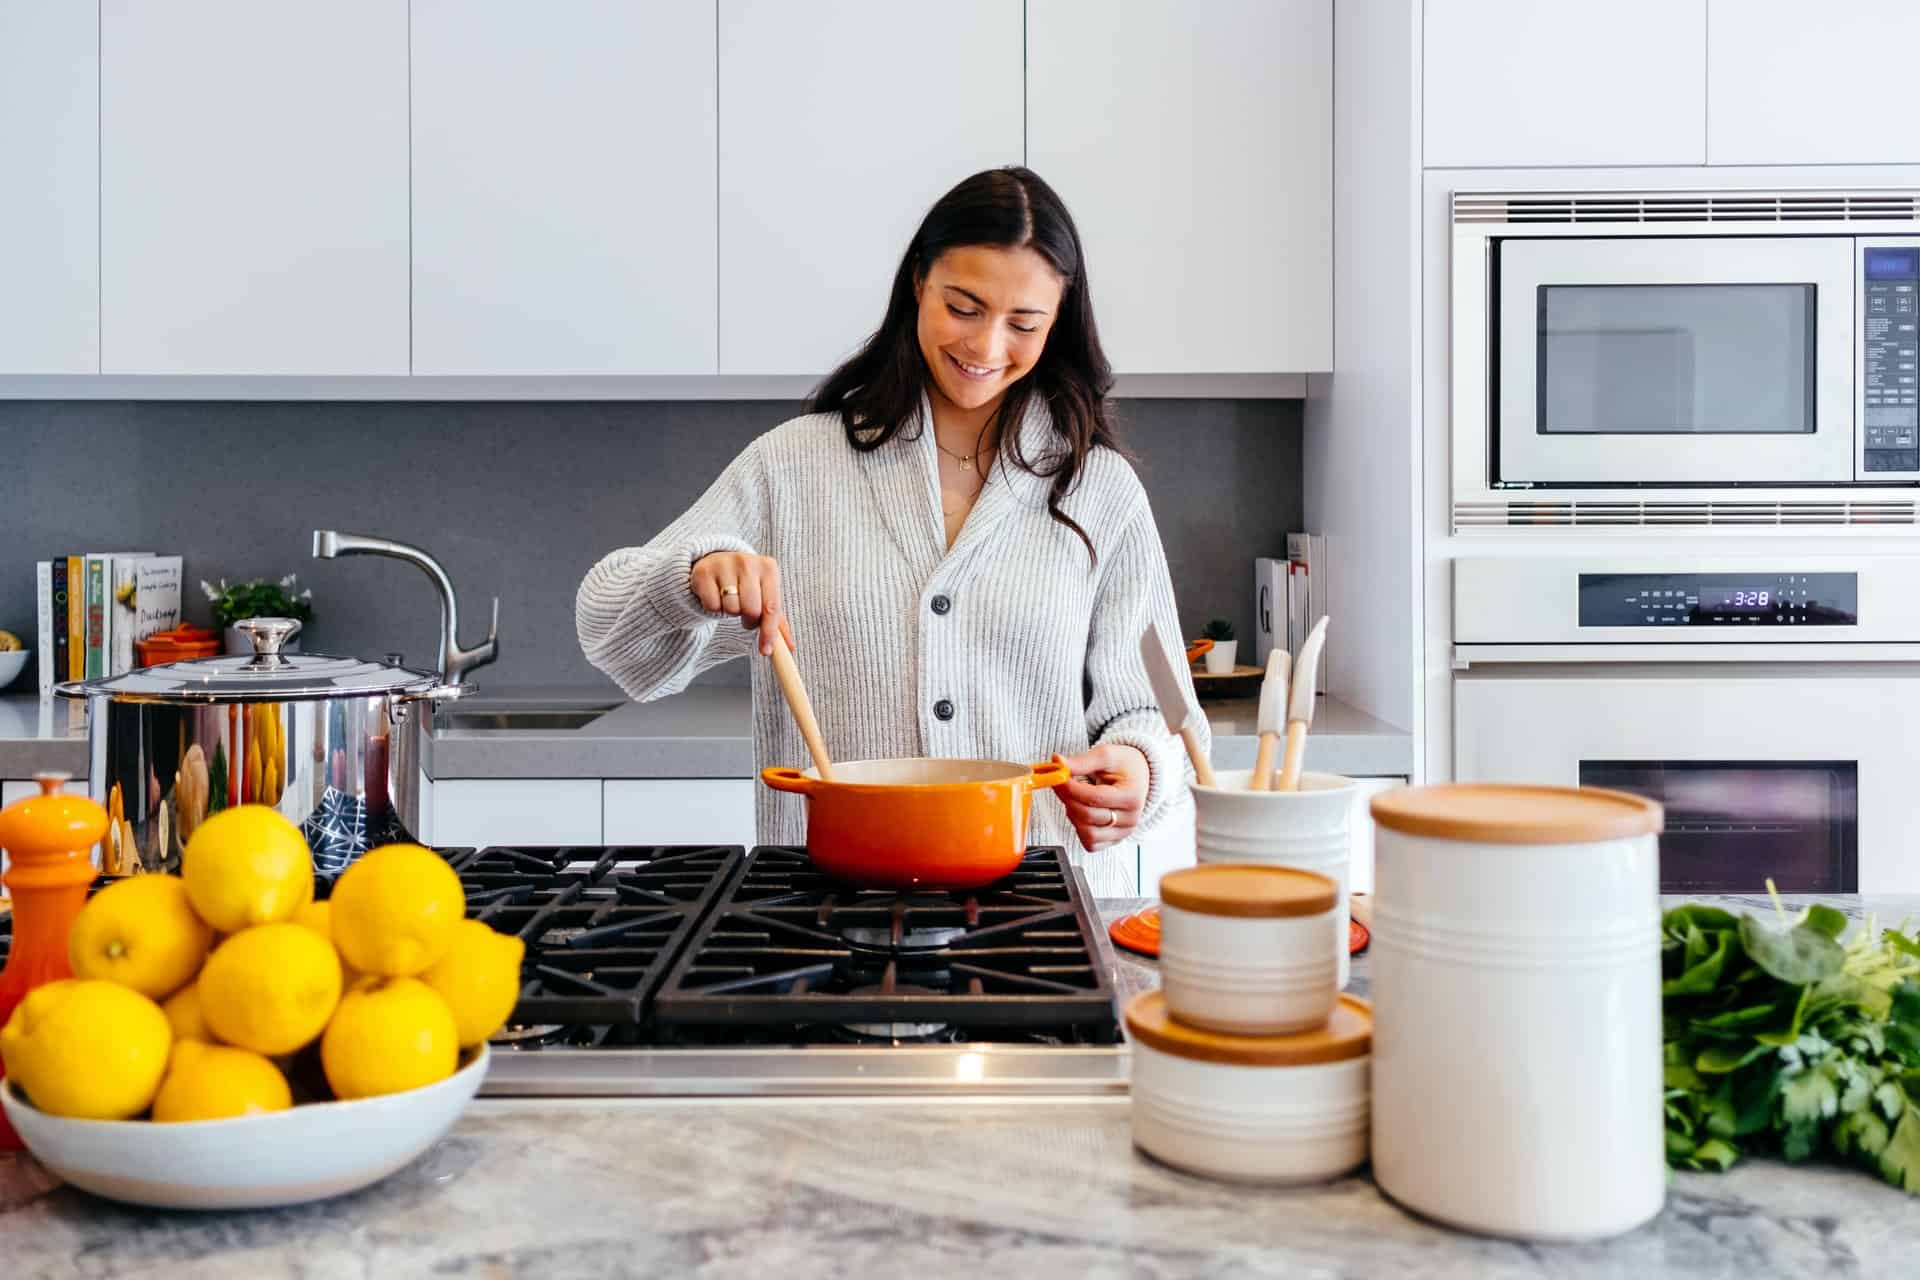 Best Cooking Ranges for Your Kitchen